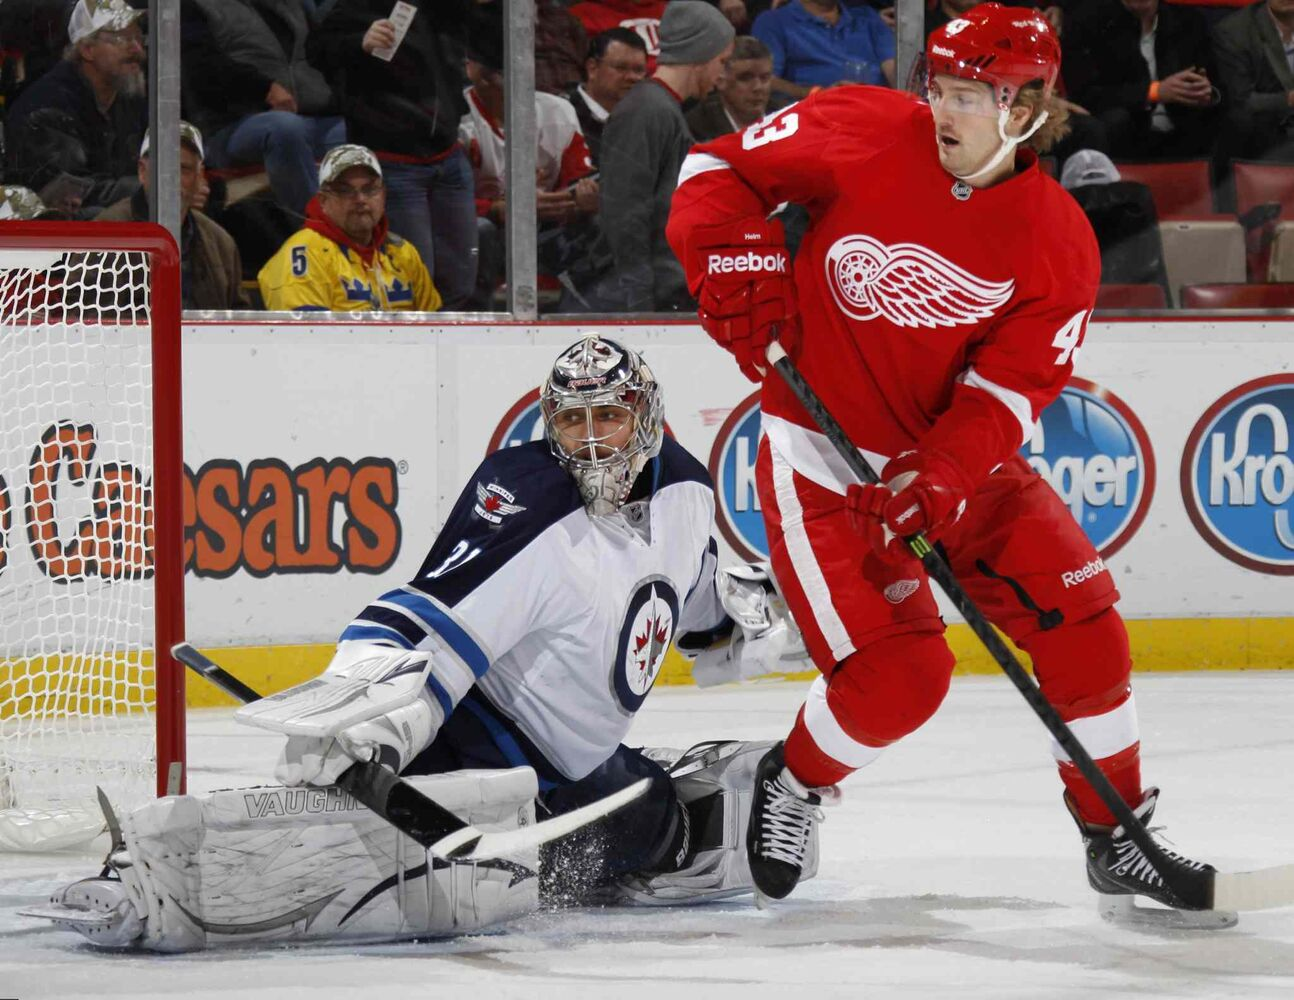 Detroit Red Wings forward Darren Helm pursues the puck in front of Winnipeg Jets goalie Ondrej Pavelec during the first period. (Julian H. Gonzalez / Tribune Media MCT)